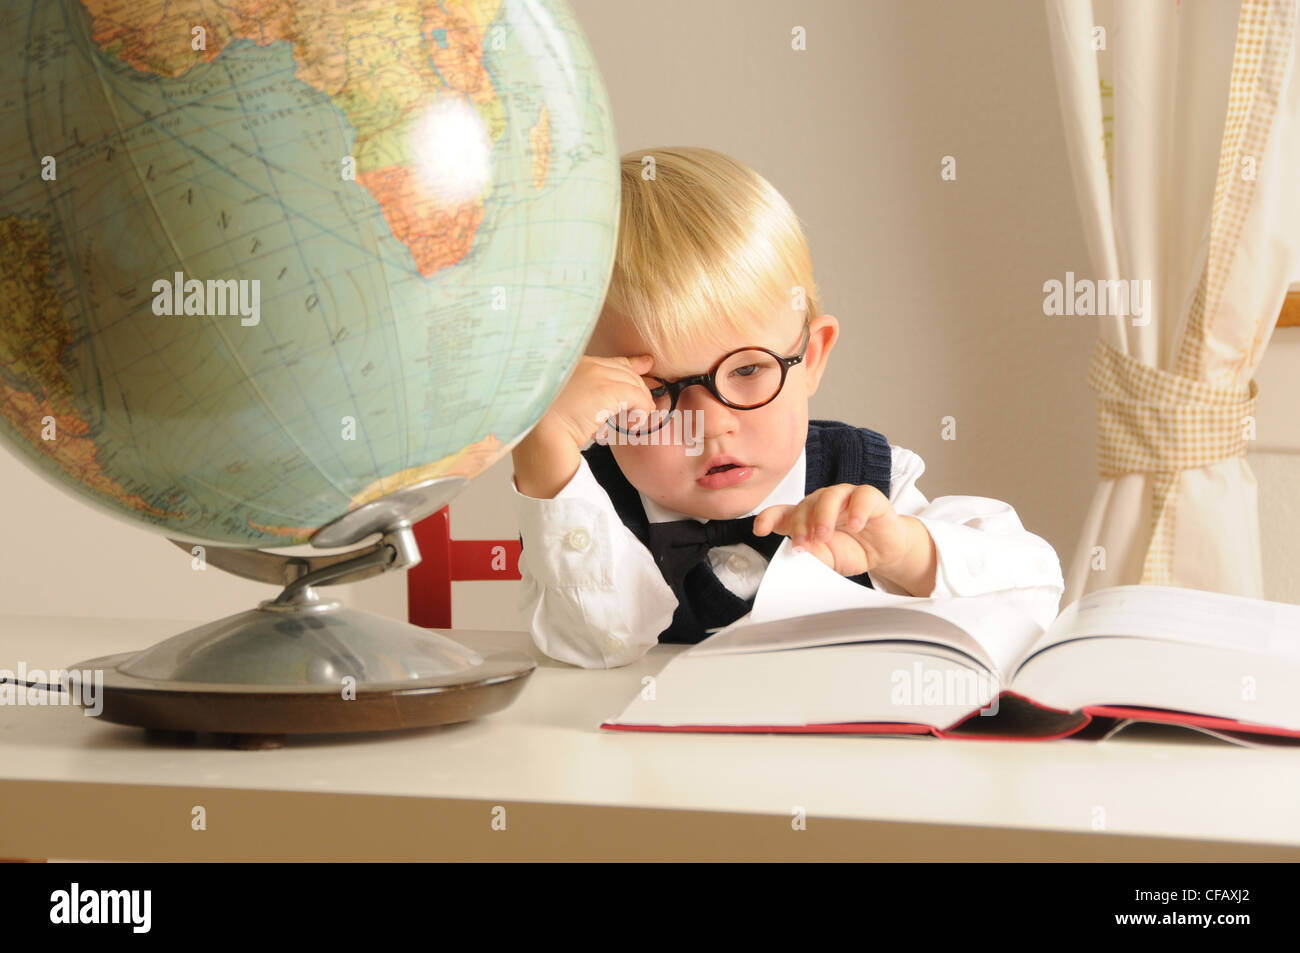 intelligent, child, education, highly gifted, further education, school, kindergarten, talent, IQ, genius, support, - Stock Image